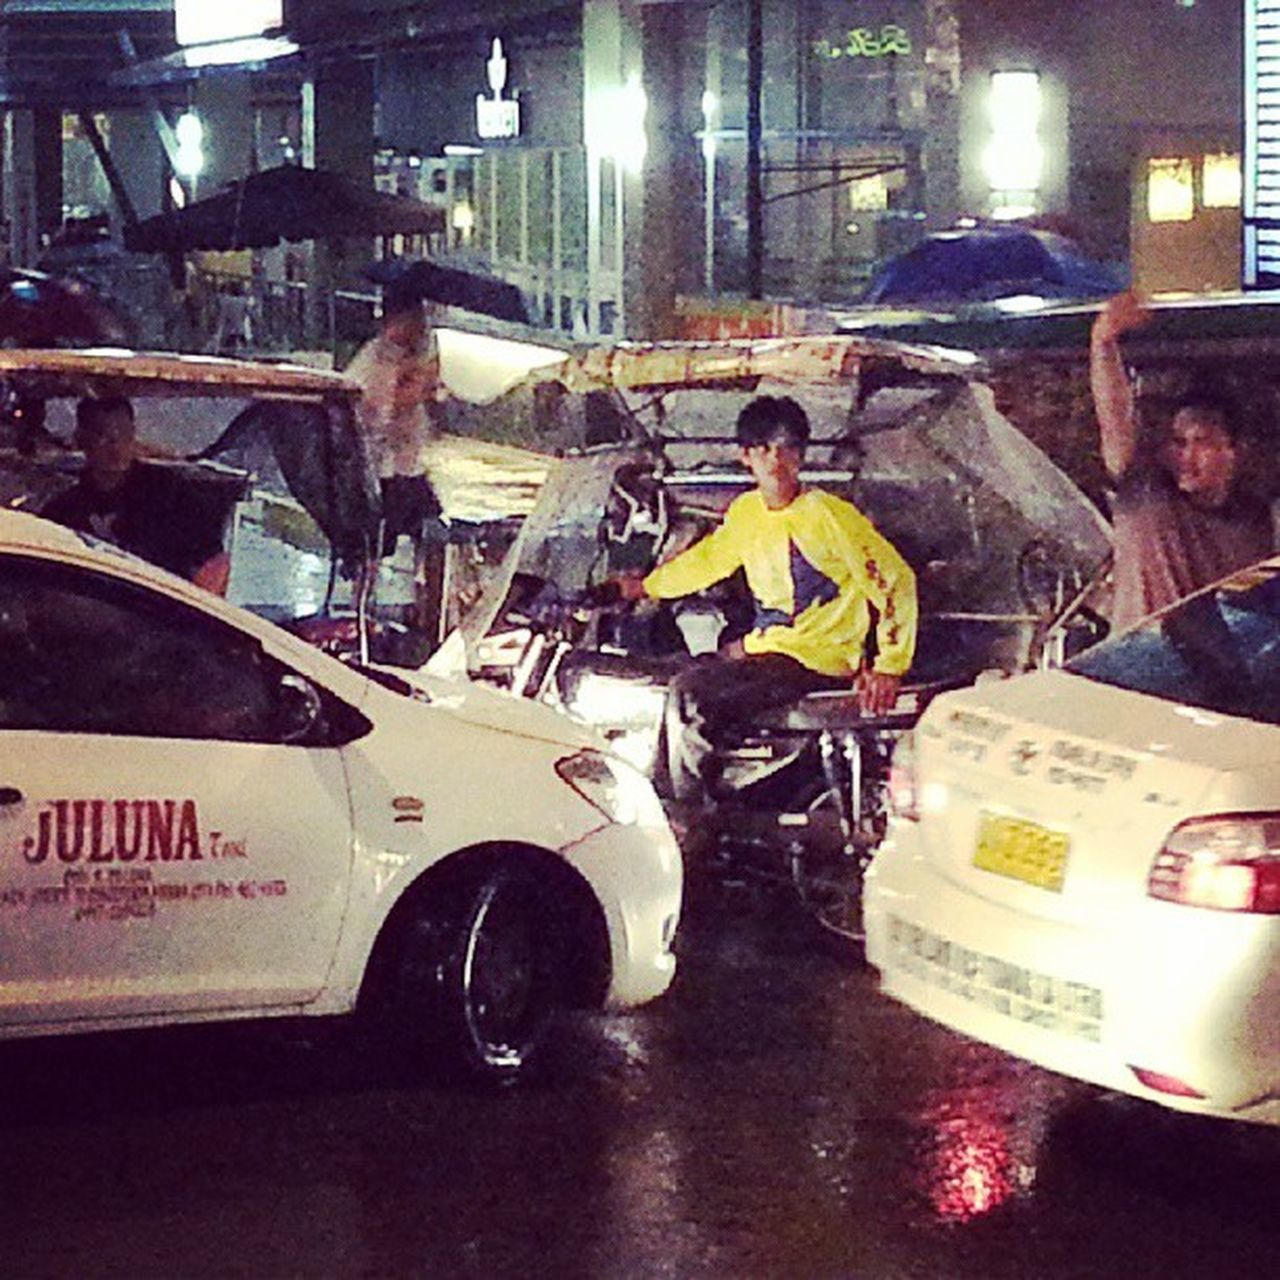 """All jammed up"" somewhere along Makati Avenue... Allshots_ Almaproject Dailythemes Gf_philippines Gf_daily Global_hotshotz Globe_travel Gang_family Instagram Ig_philippines Ig_street Ic_thestreets Jj_streetphotography Mybest_moment Mybest_shot Phototag_it Philippines Streetstylesgf Webstagram Worldcaptures Ig_fotogramers Insta_crew"